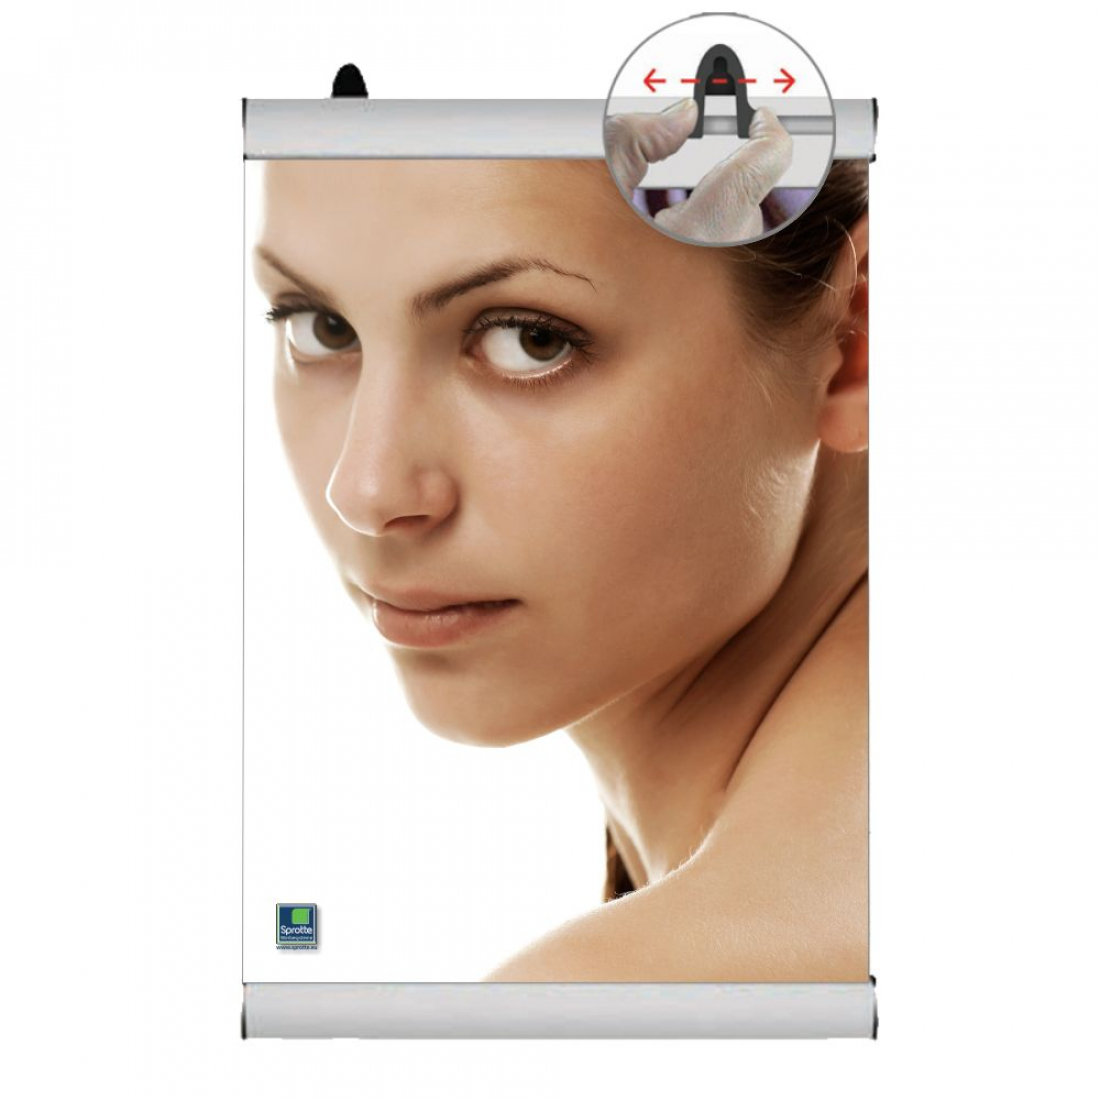 Poster-Clamp eco 420mm A2/A3 Klemmprofil